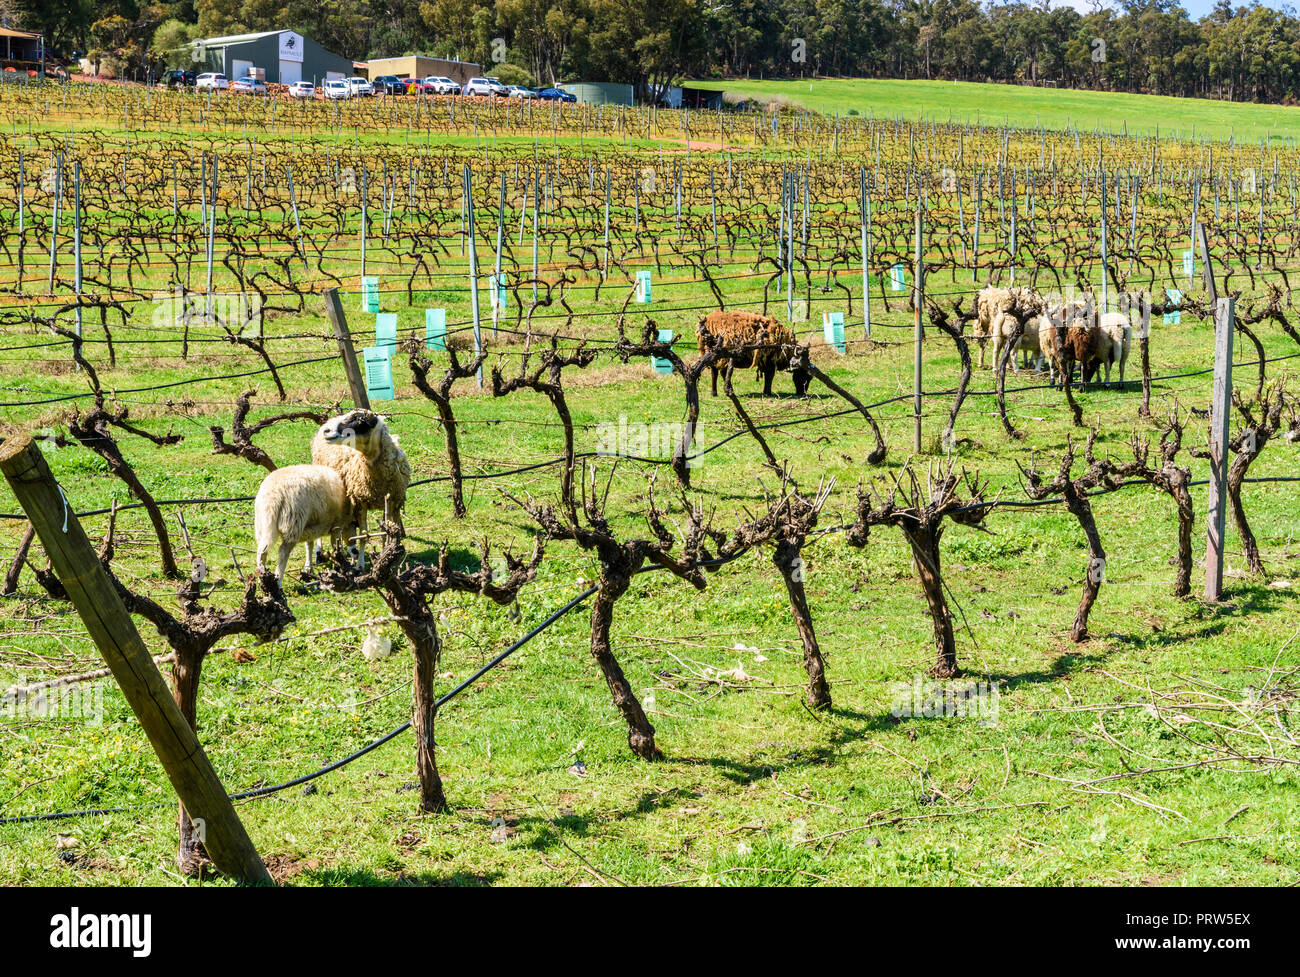 Environmentally friendly method of weed clearing between rows of grapevines at the Hainault Vineyard in the Bickley Valley, Western Australia - Stock Image